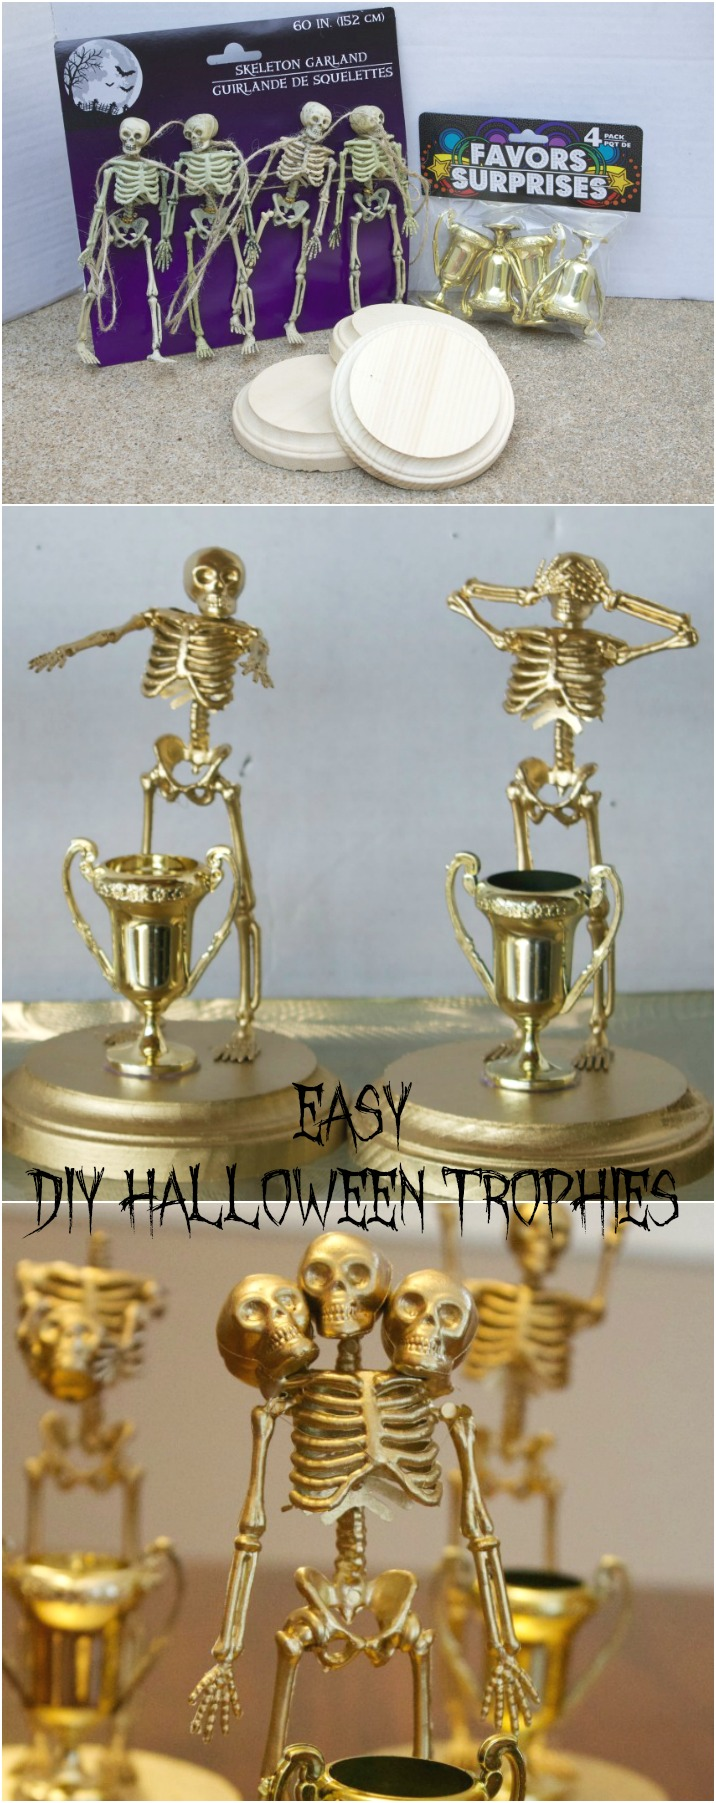 Easy Make at Home Halloween Trophies for costume Contest Parties